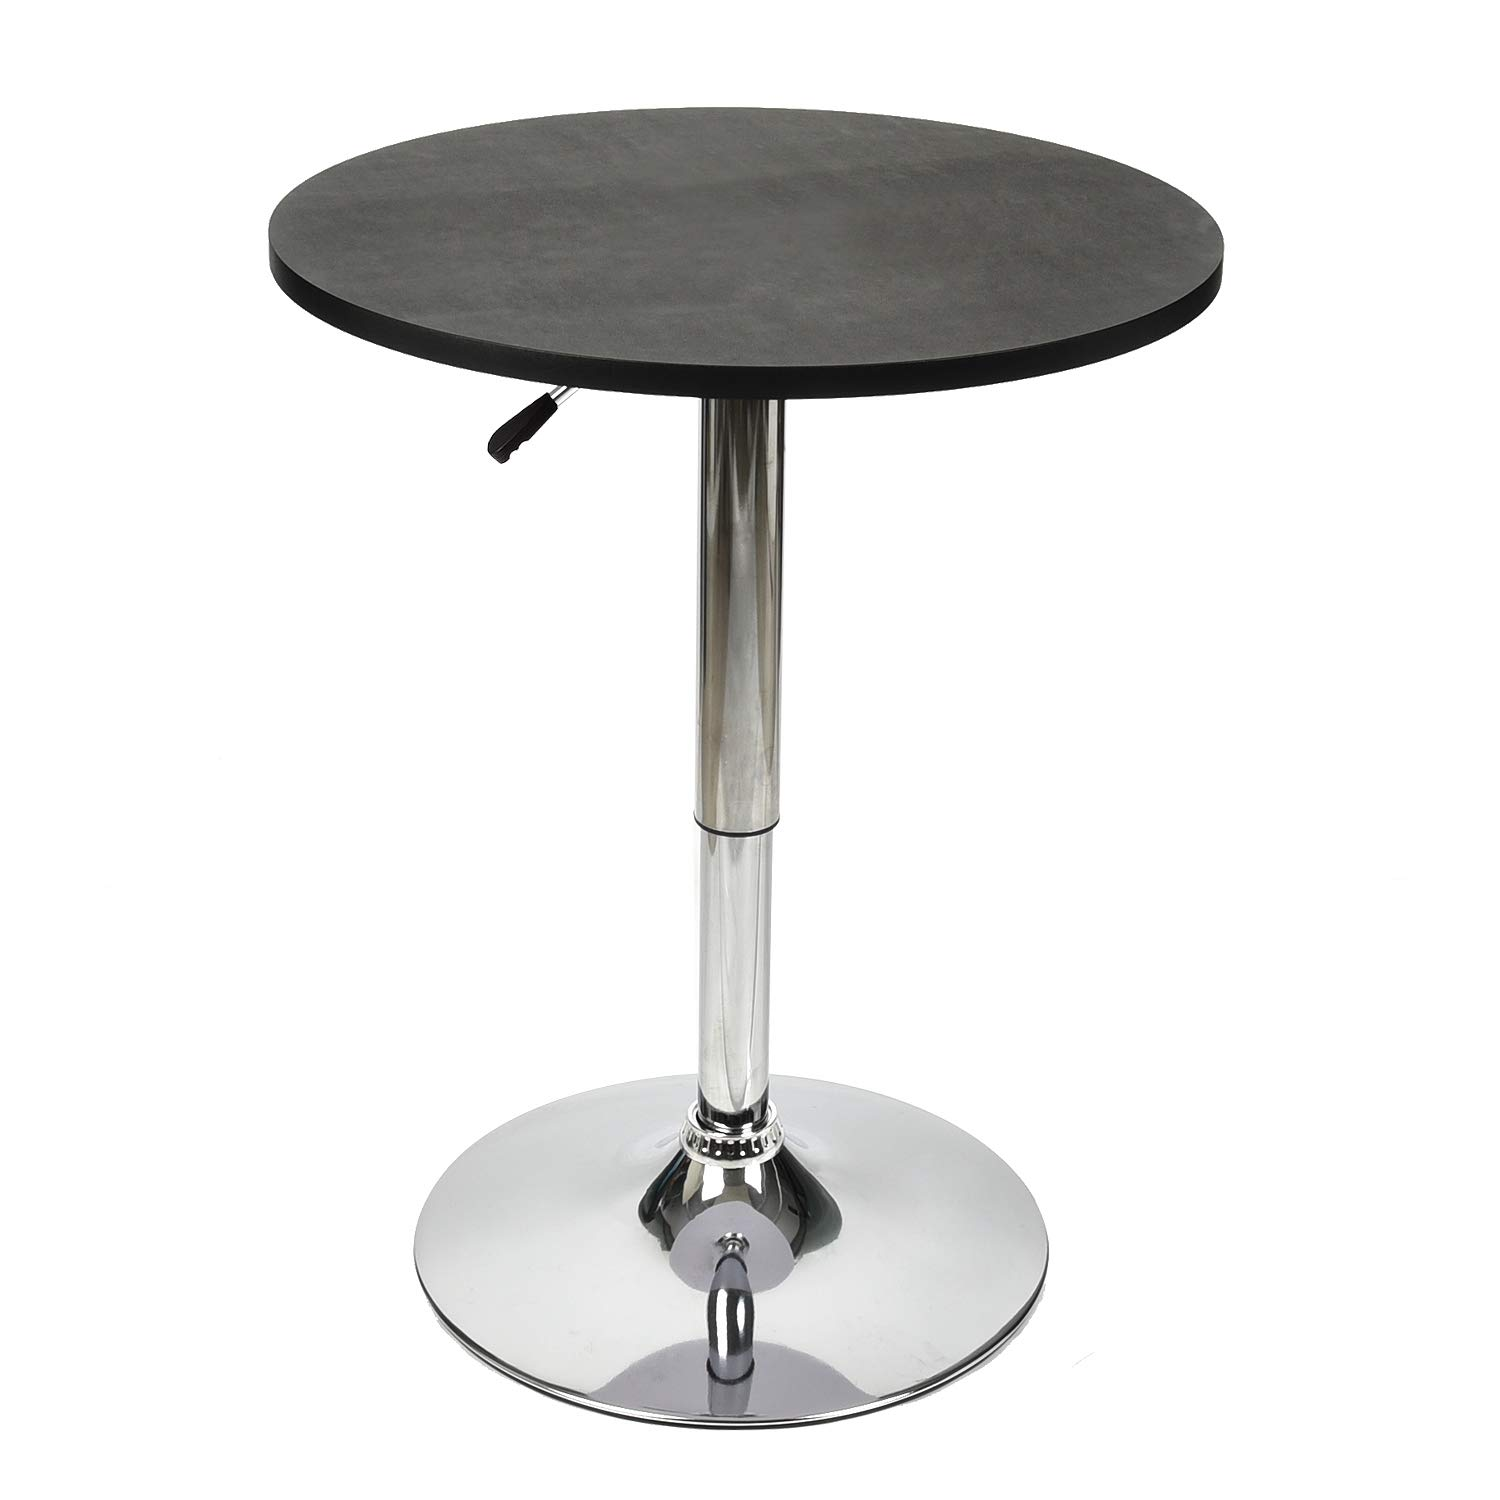 35 Inches Height Round Bar Table Adjustable Height Chrome Metal and Wood Cocktail Pub Table MDF Top 360°Swivel Furniture (Black)